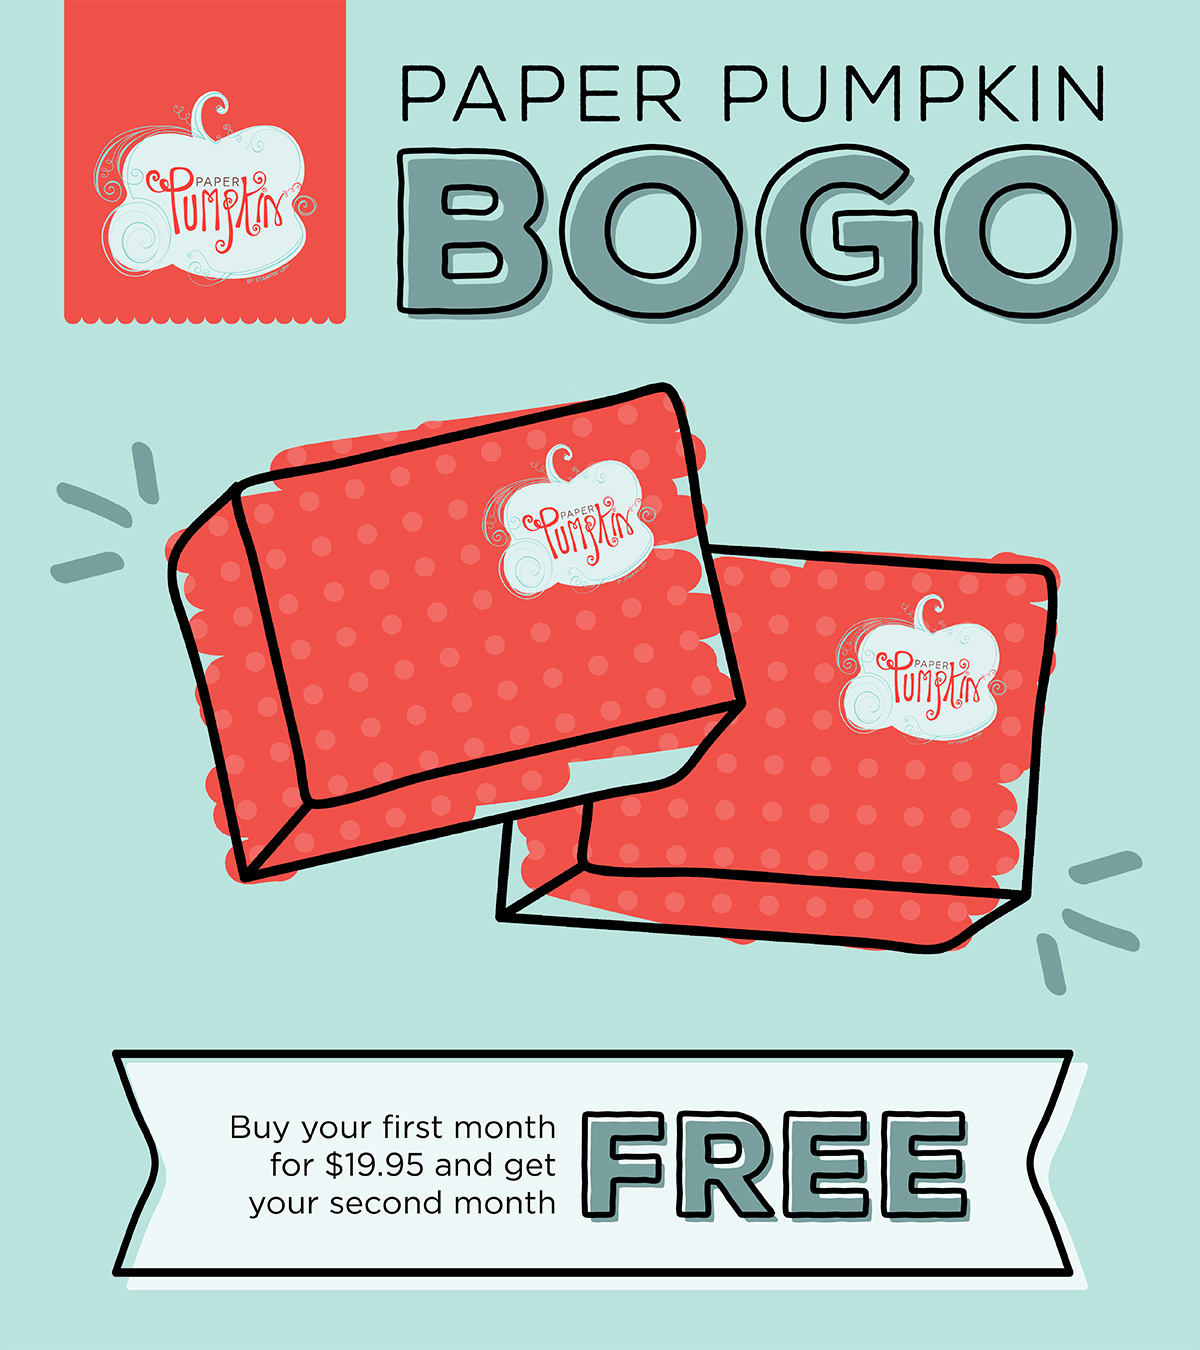 https://i1.wp.com/su-media.s3.amazonaws.com/media/PaperPumpkin/2016_PP_BOGO/PP_BOGO_Facebook_US.jpg